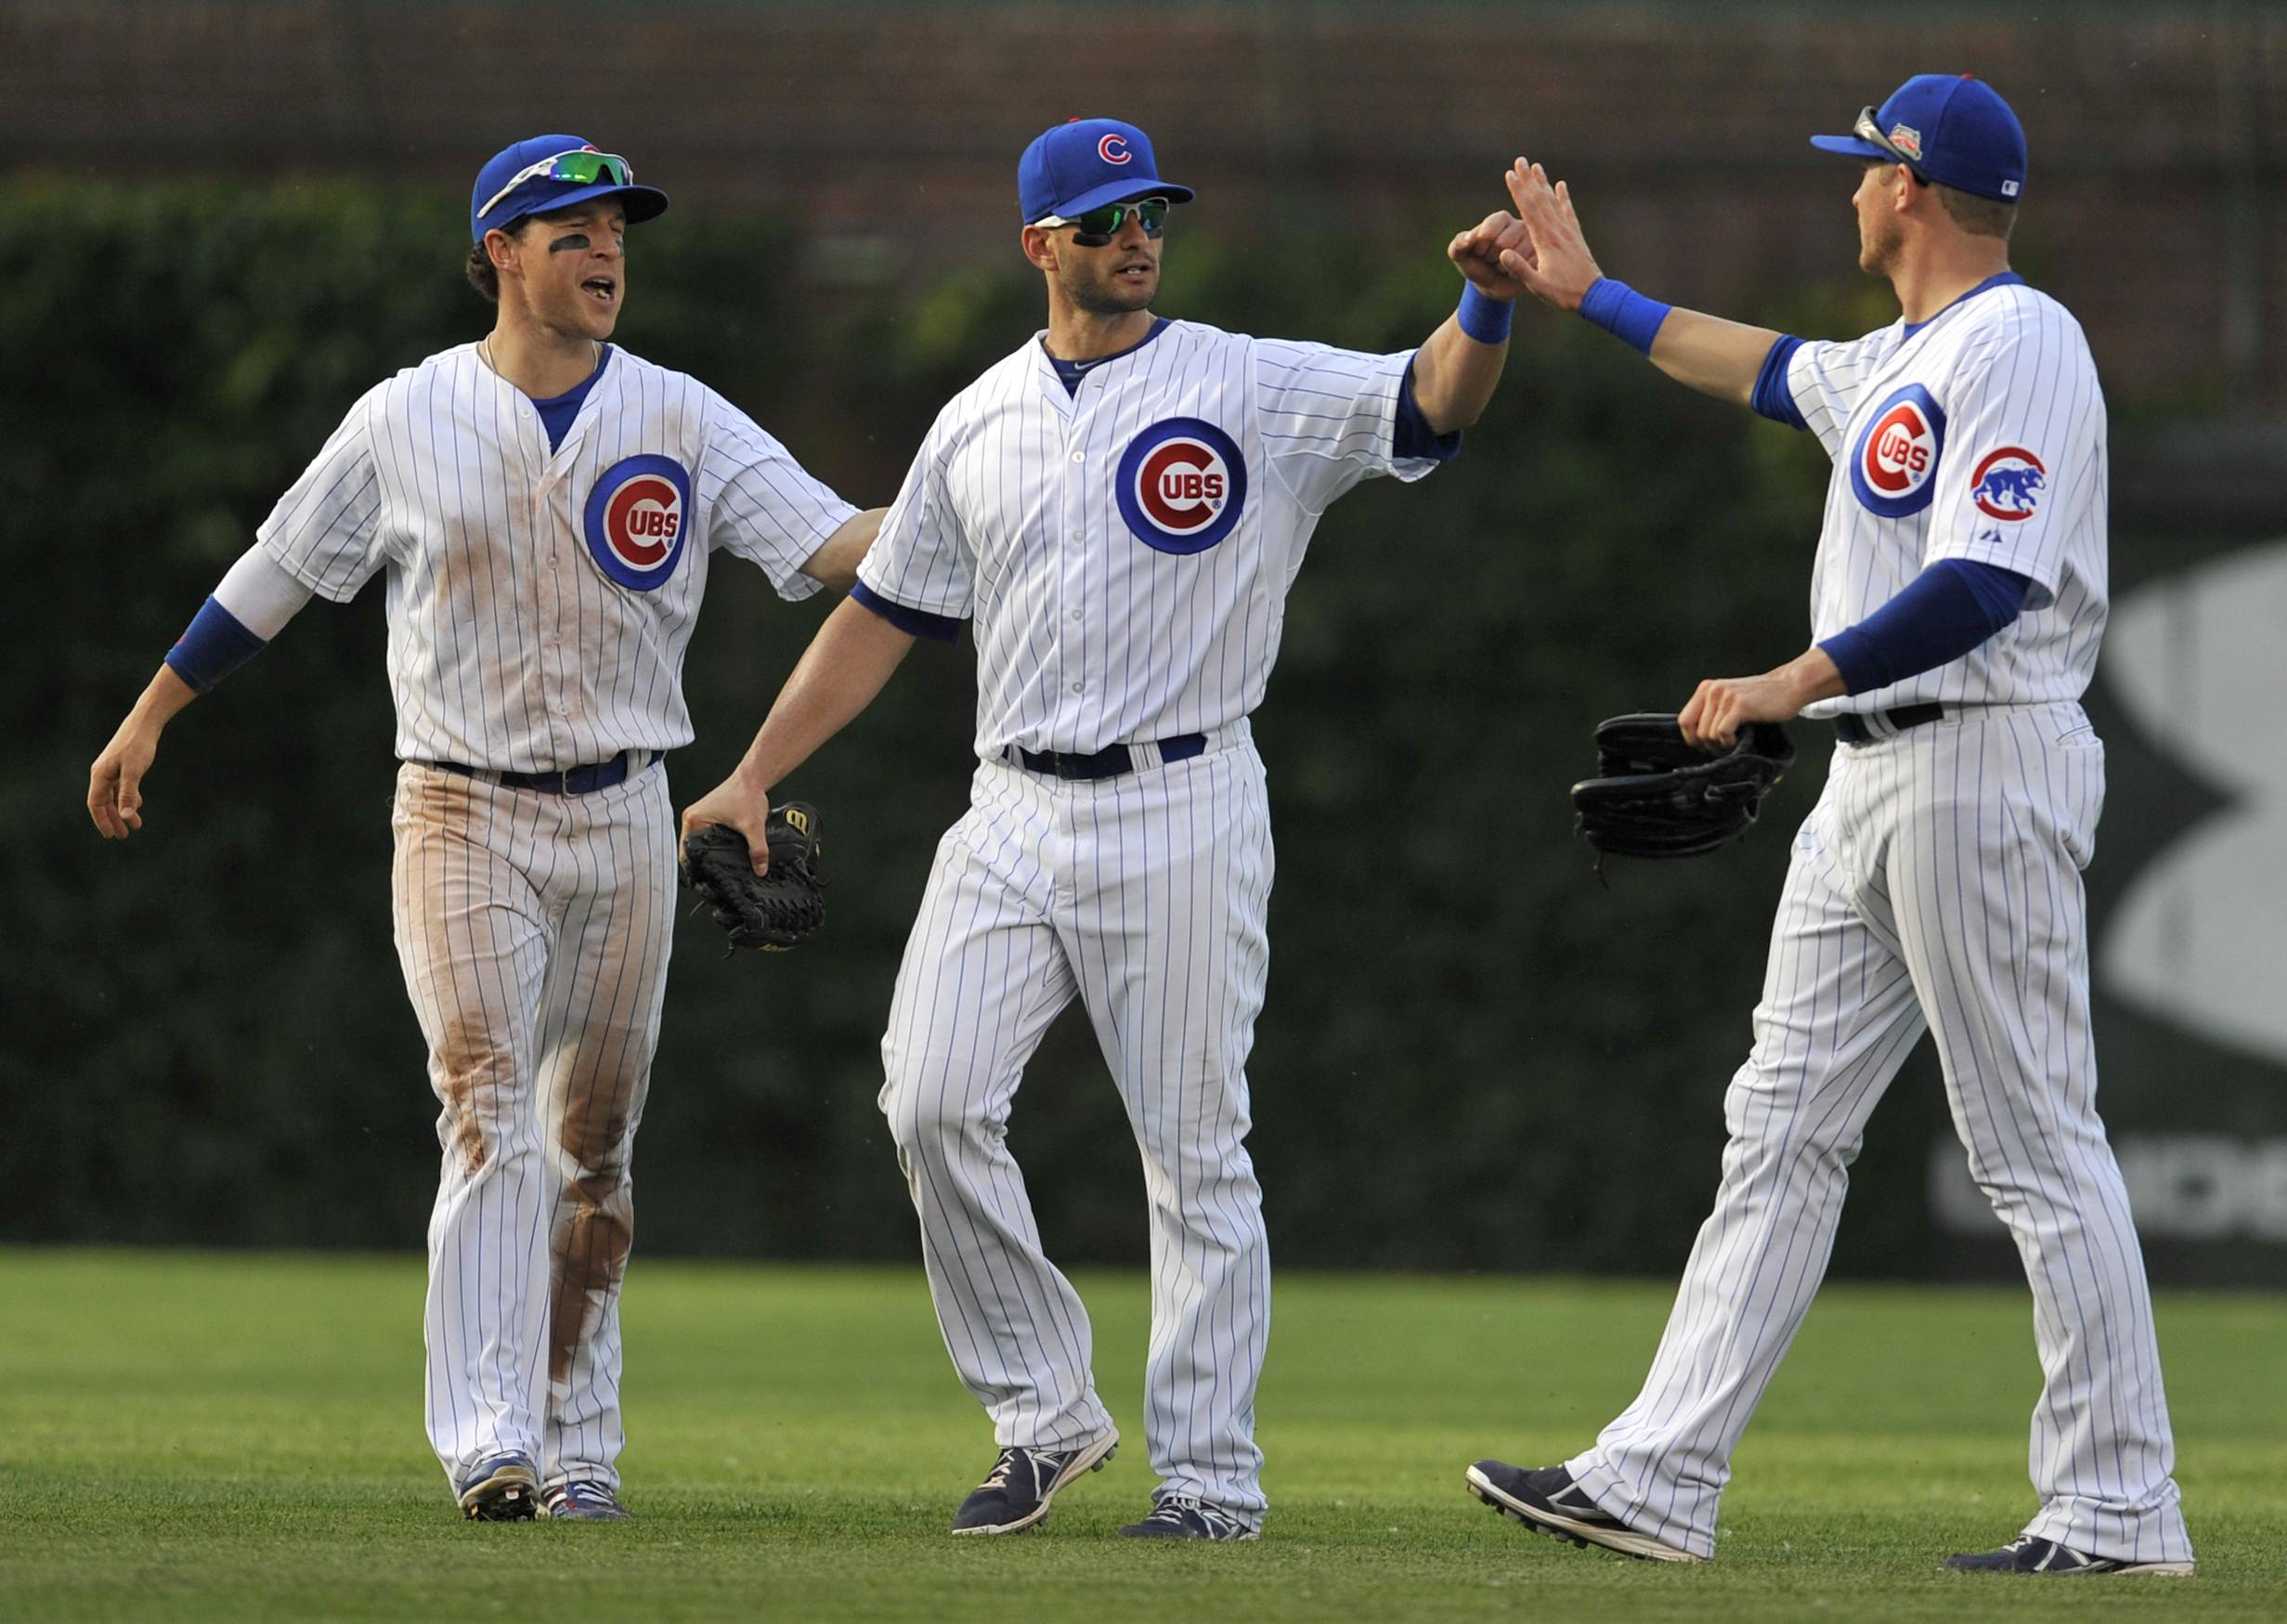 Cubs outfielders Justin Ruggiano, left, Chris Coghlan, center, and Ryan Sweeney right, celebrate after the Cubs defeated the Washington Nationals 7-2 on Friday. The Cubs are 21-17 since May 17, but playing above .500 baseball will be difficult if — as expected — the team makes a flurry of trades before July 31.